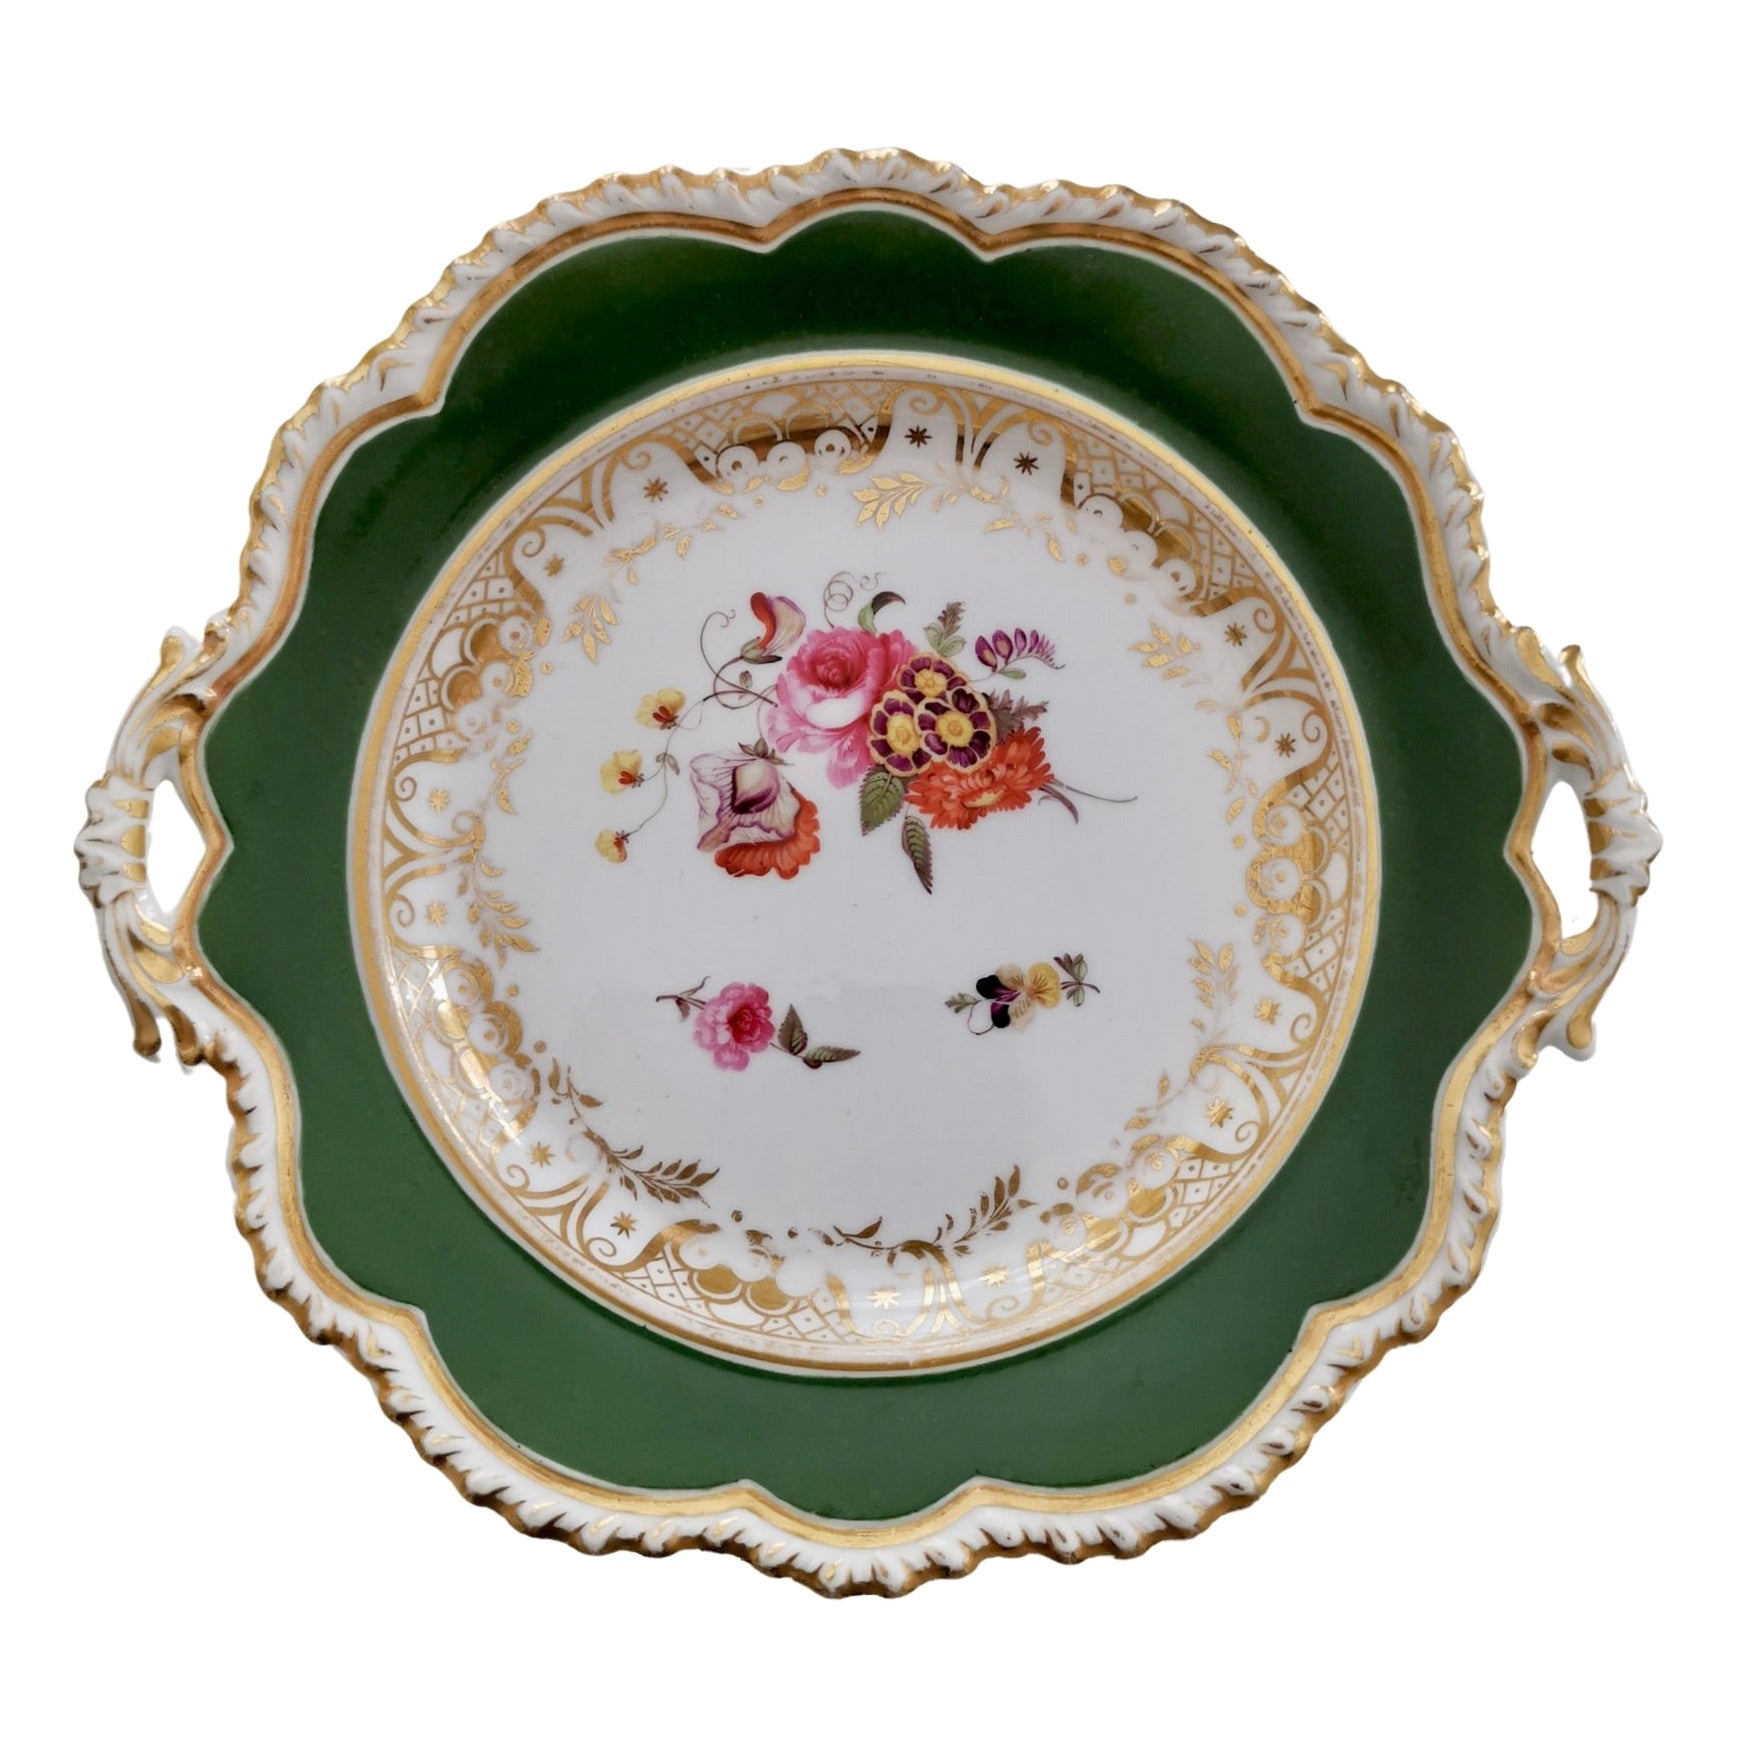 Ridgway Porcelain Plate, Green with Hand Painted Flowers, Regency, ca 1825